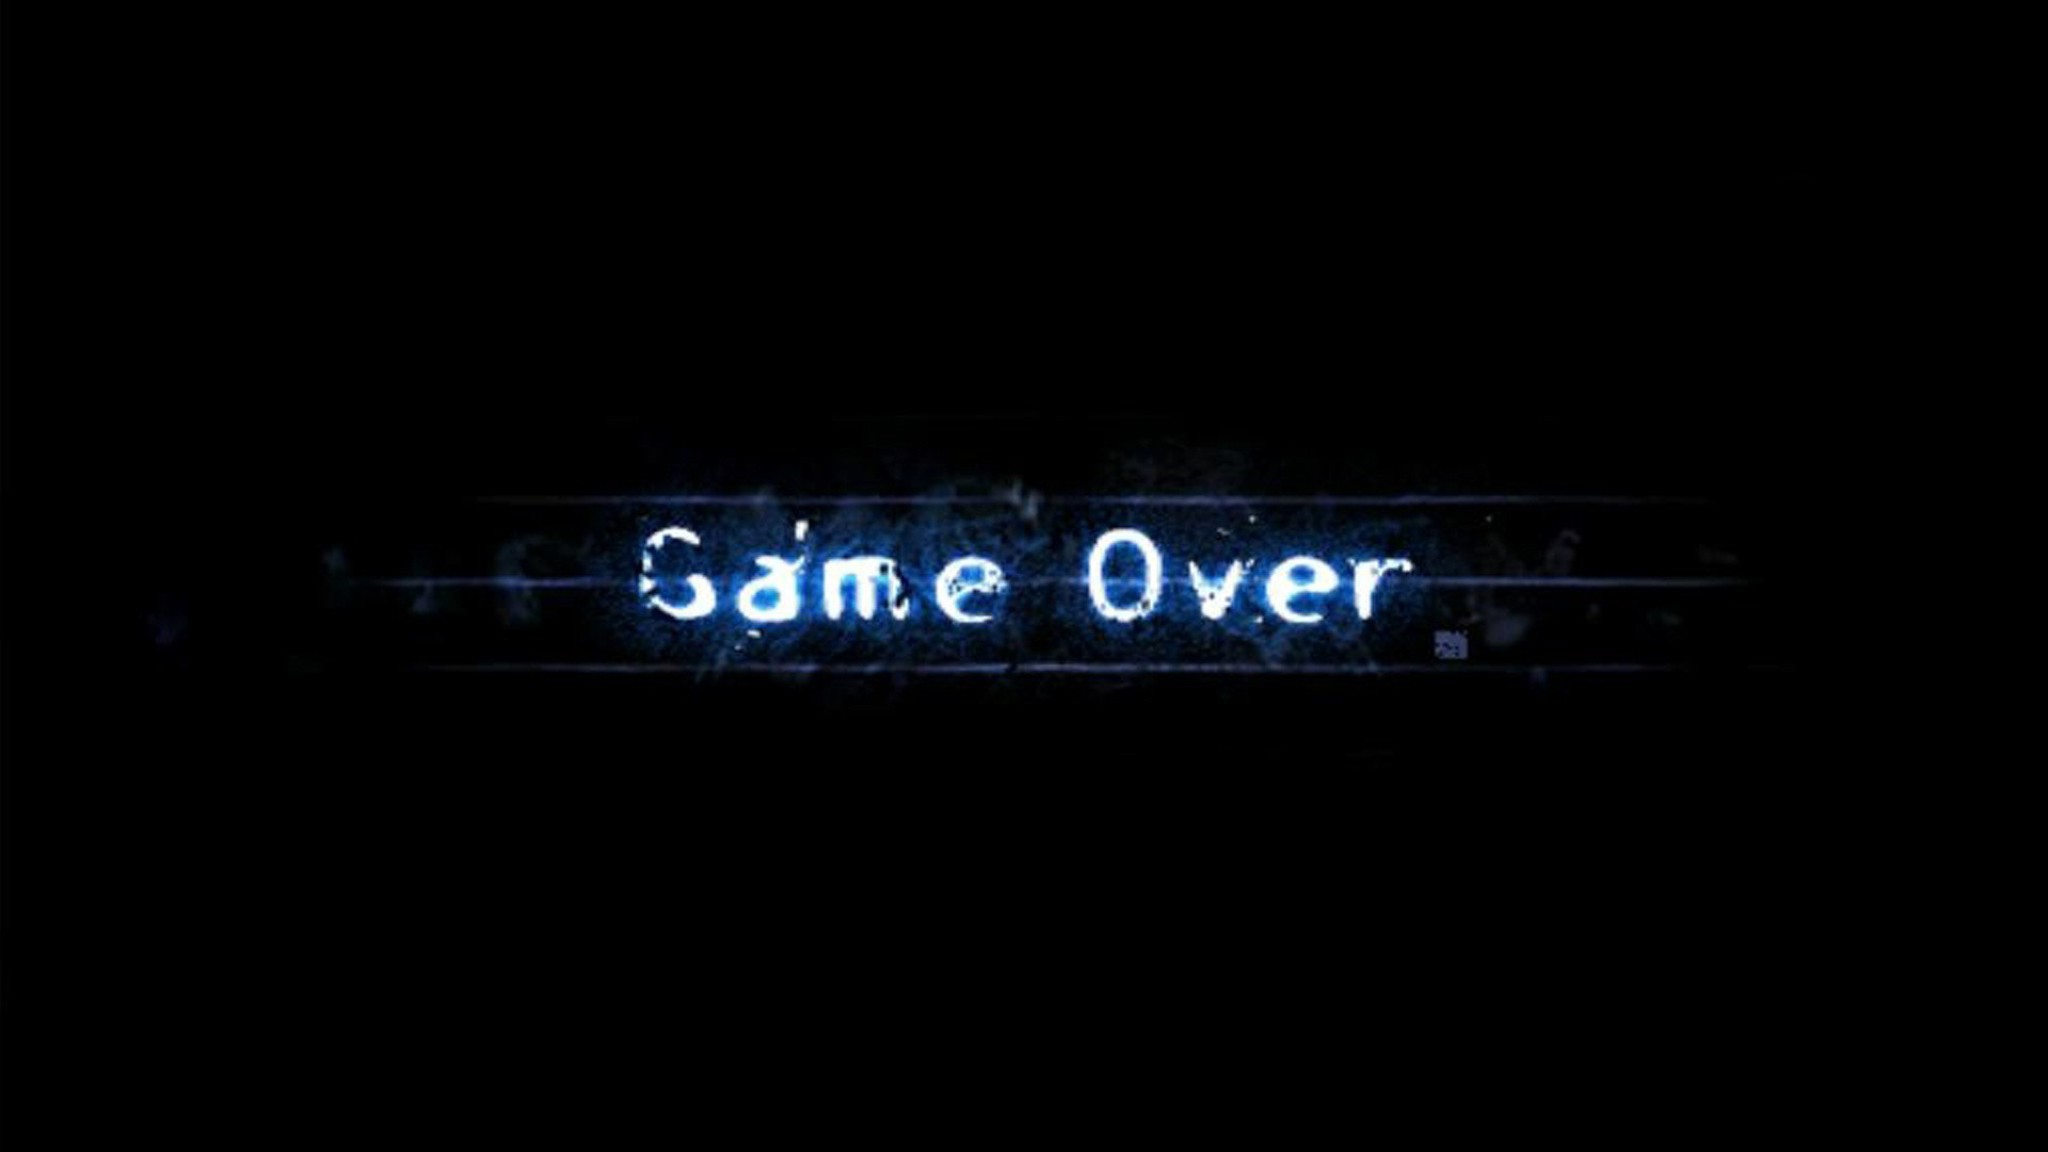 Game over Licht minimalis Typografie wallpaper ...